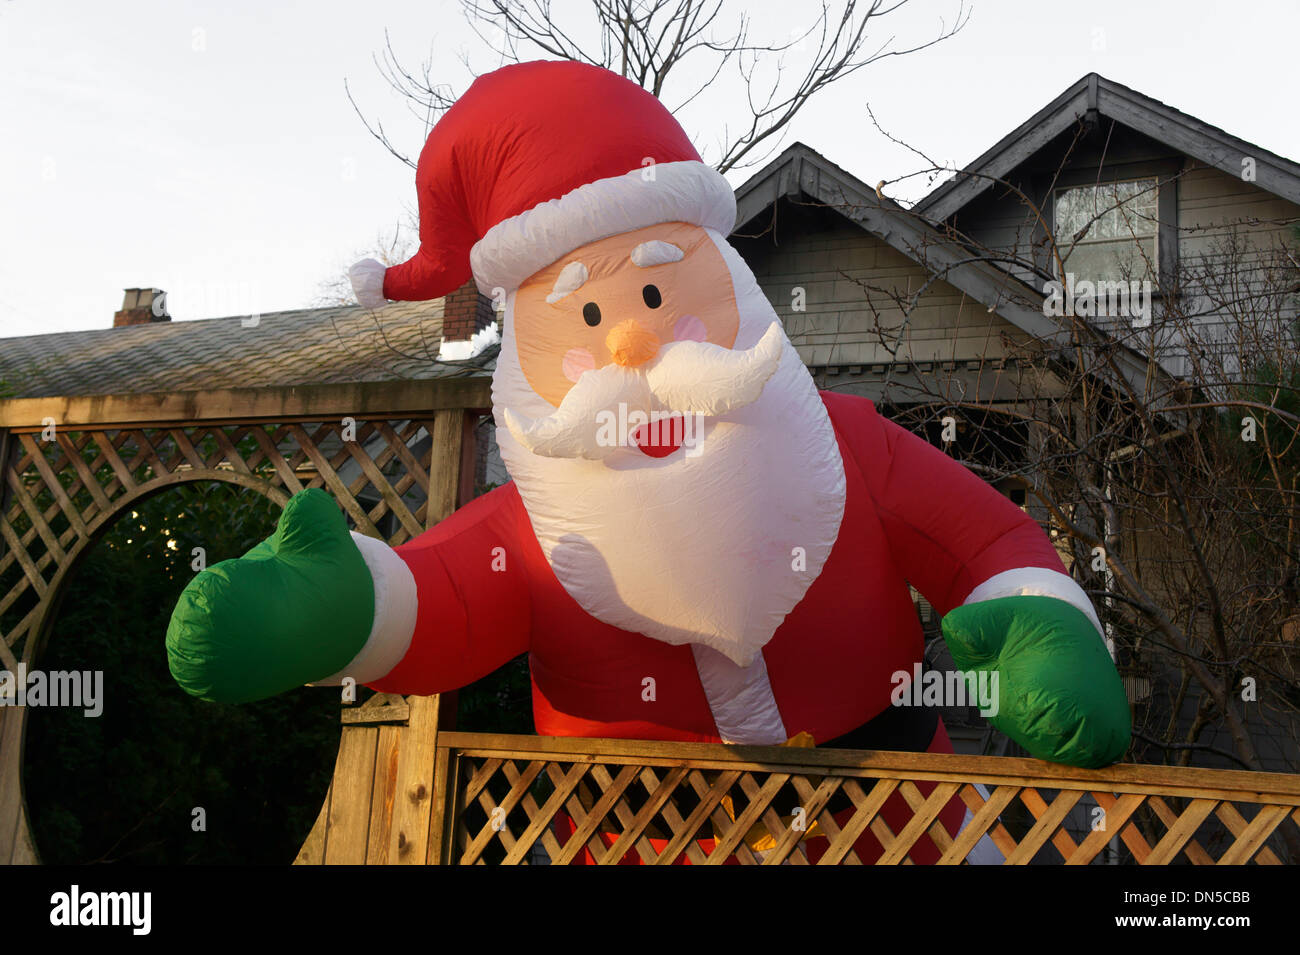 Giant inflatable Santa Claus balloon in the front yard of a house - Stock Image